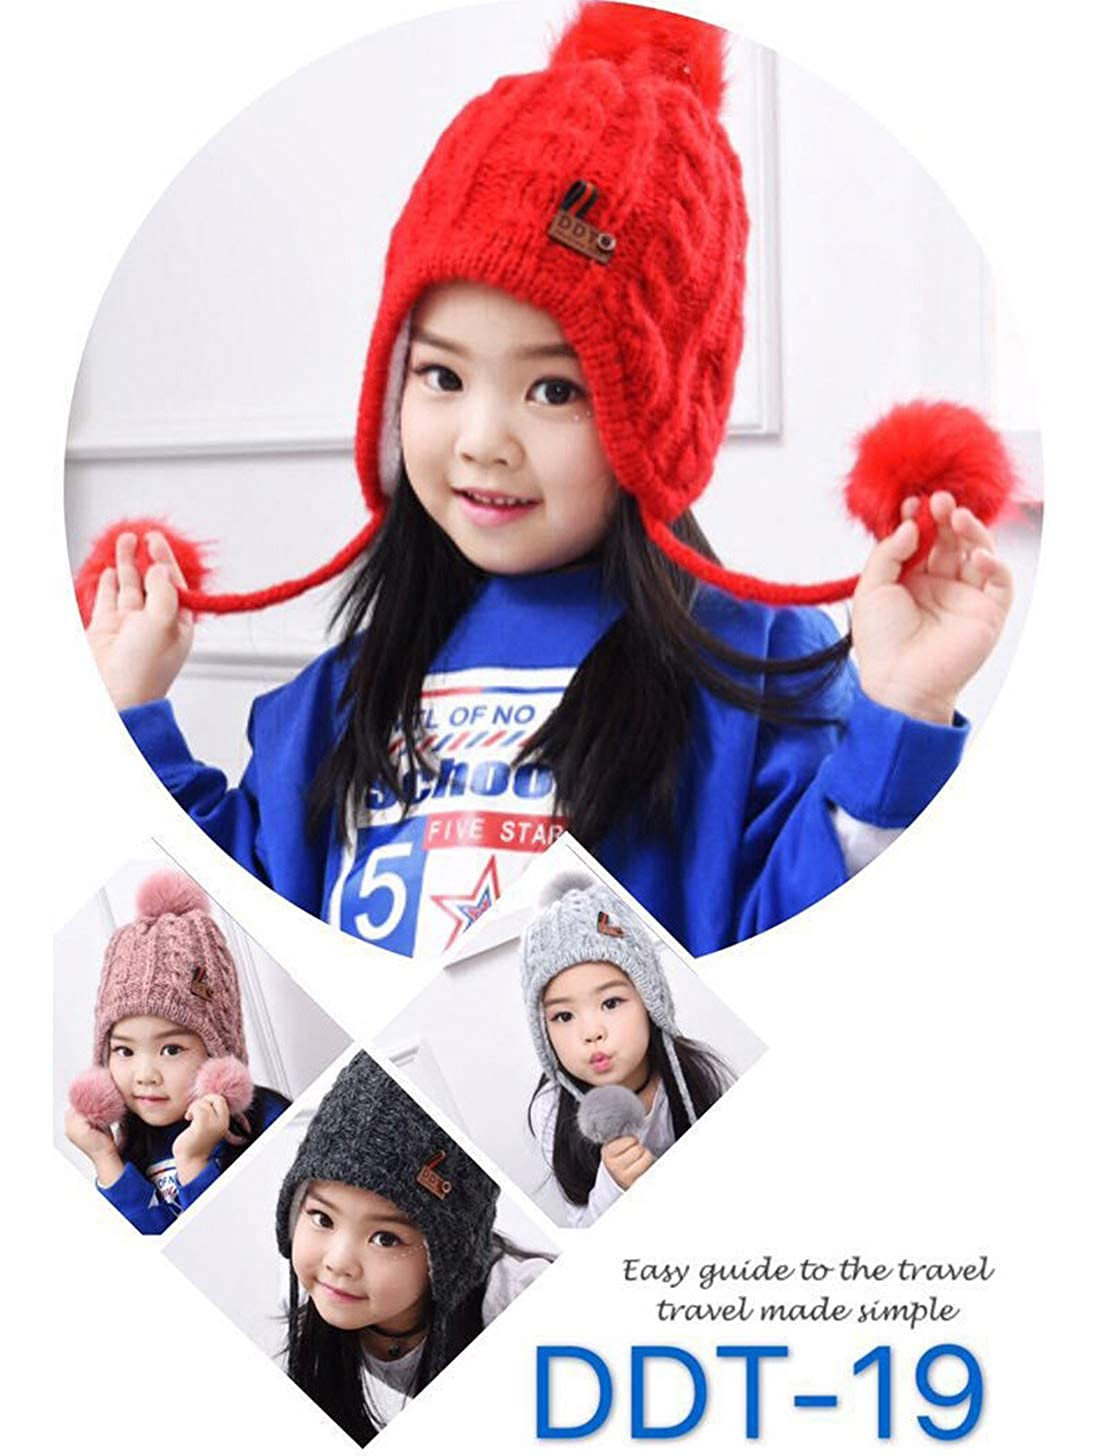 Red Childrens Twist Cable Knited Hat Pom Pom Ball Winter Plus Velvet Earmuffs Big Wool Hat Keep Warm Bonnet Ear Flap Caps Skullies Beanies Baby Hats Caps